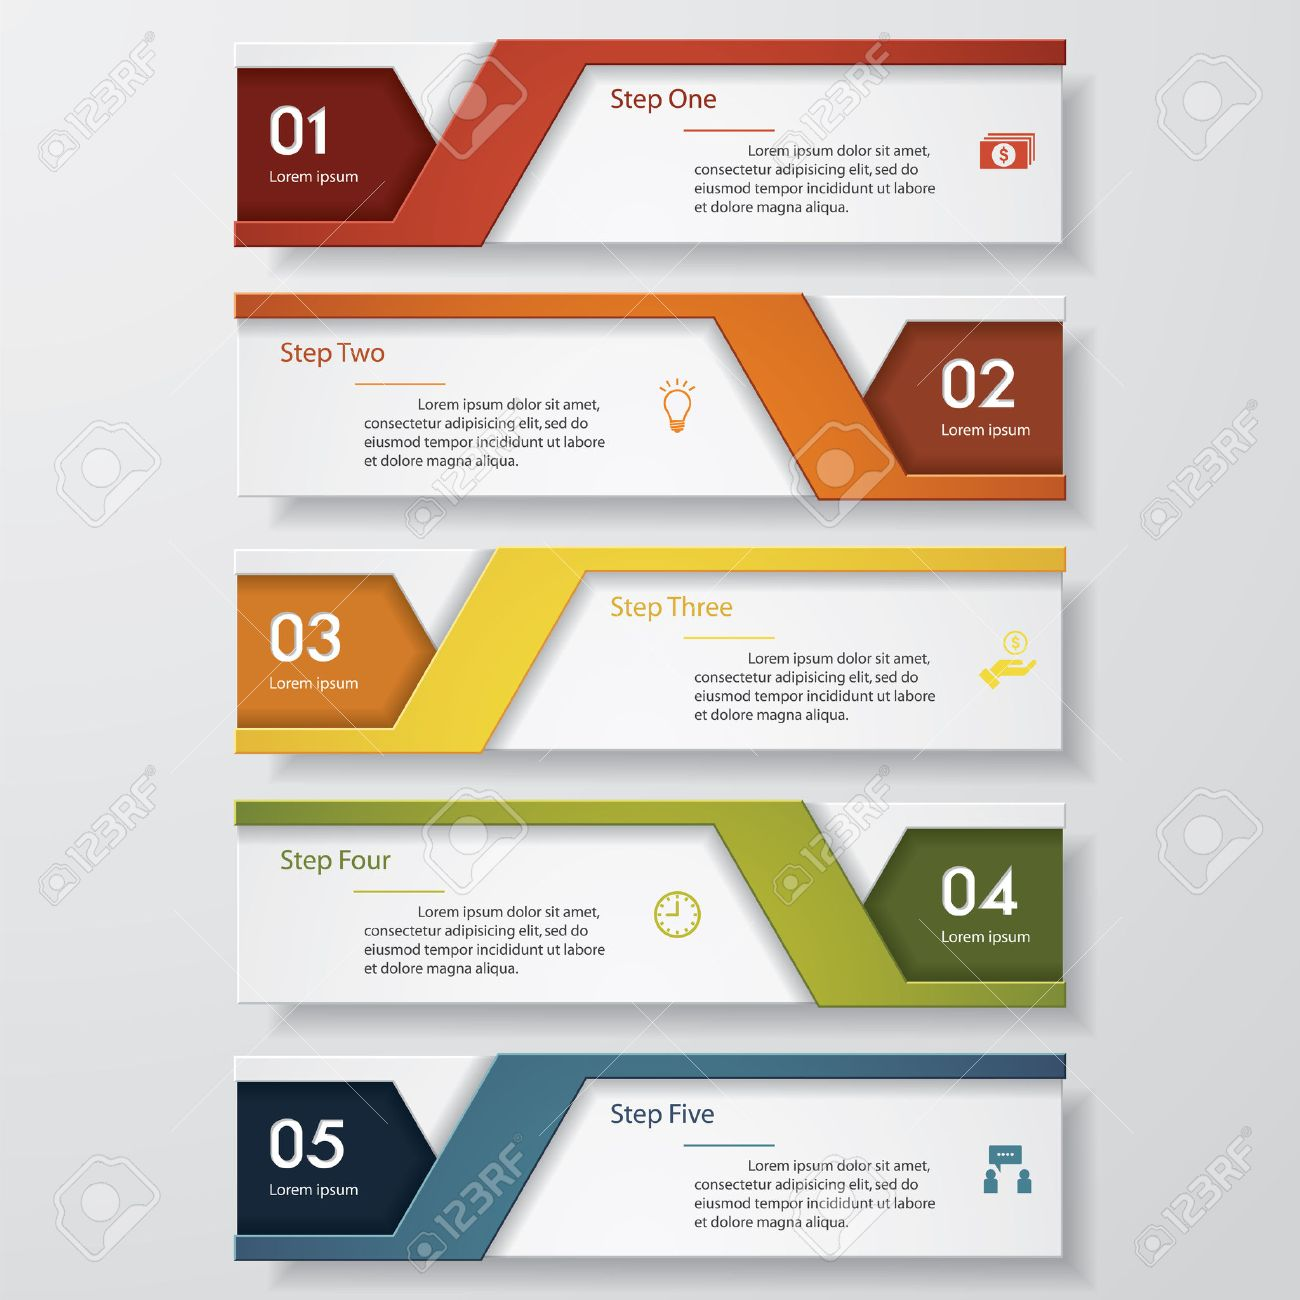 design clean number banners template graphic or website layout